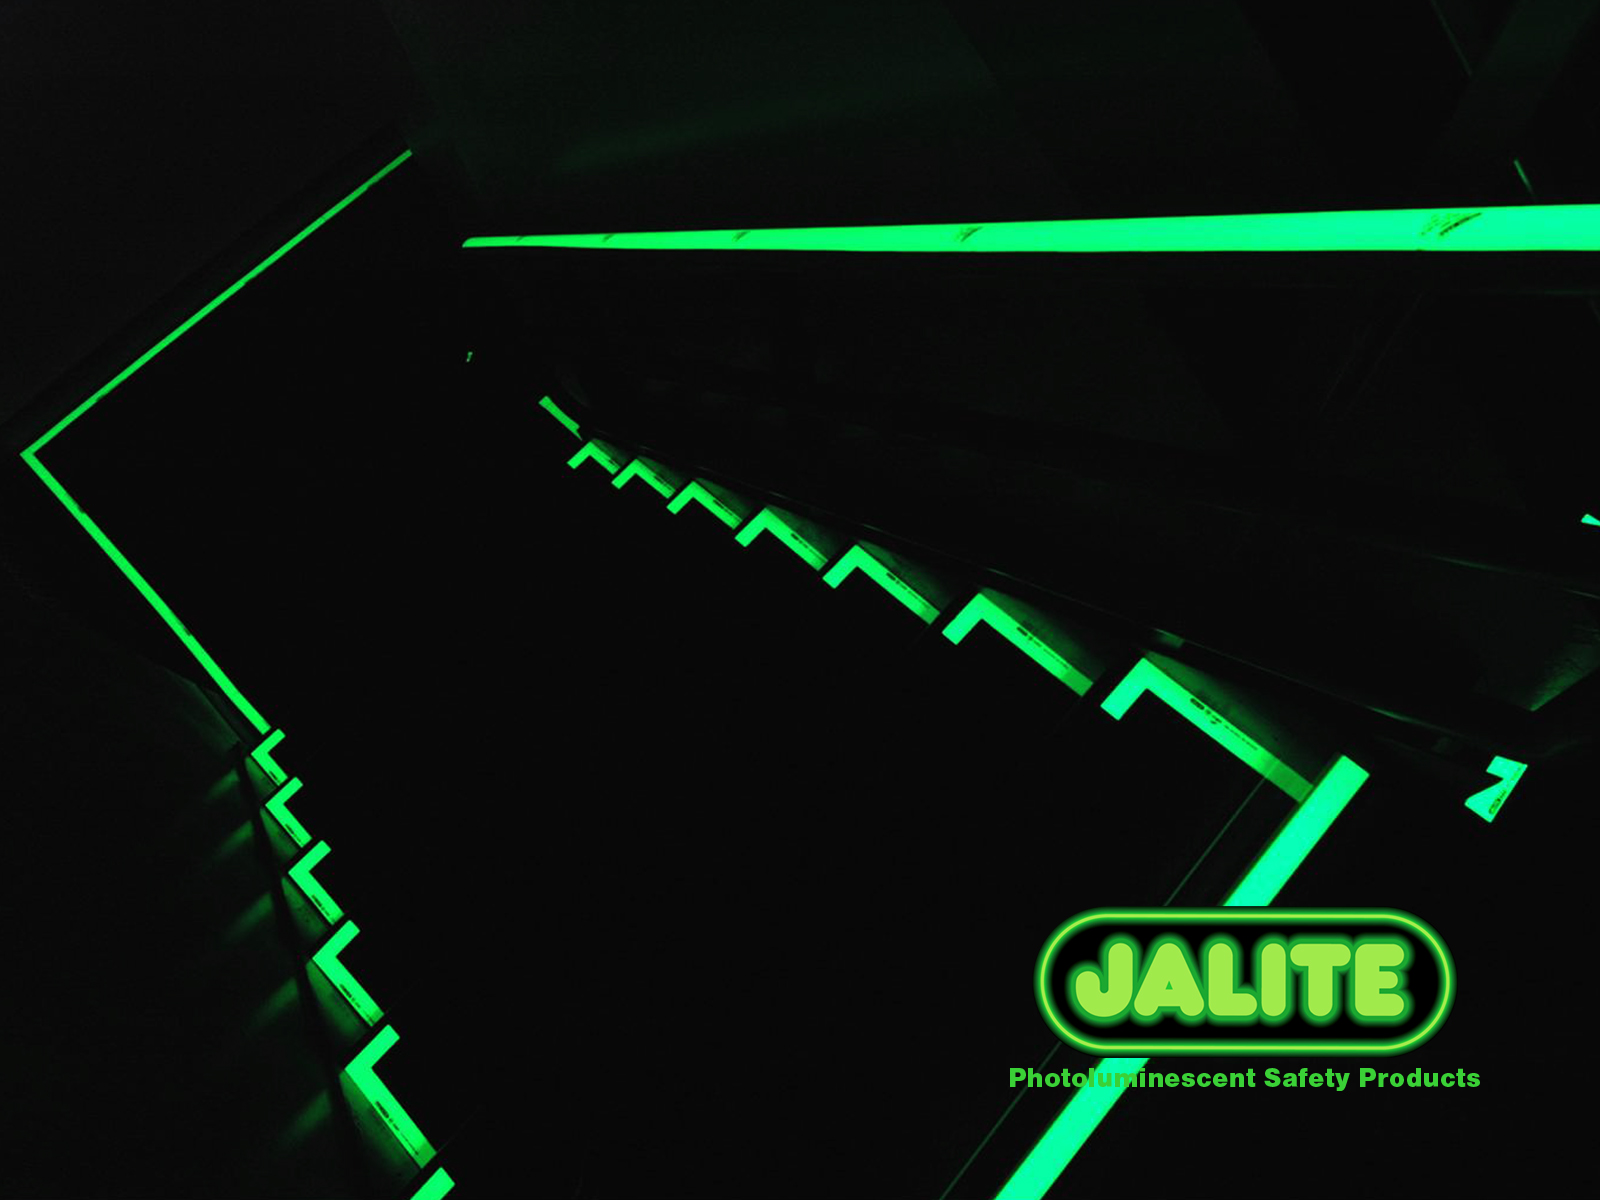 JALITE photoluminescent safety products